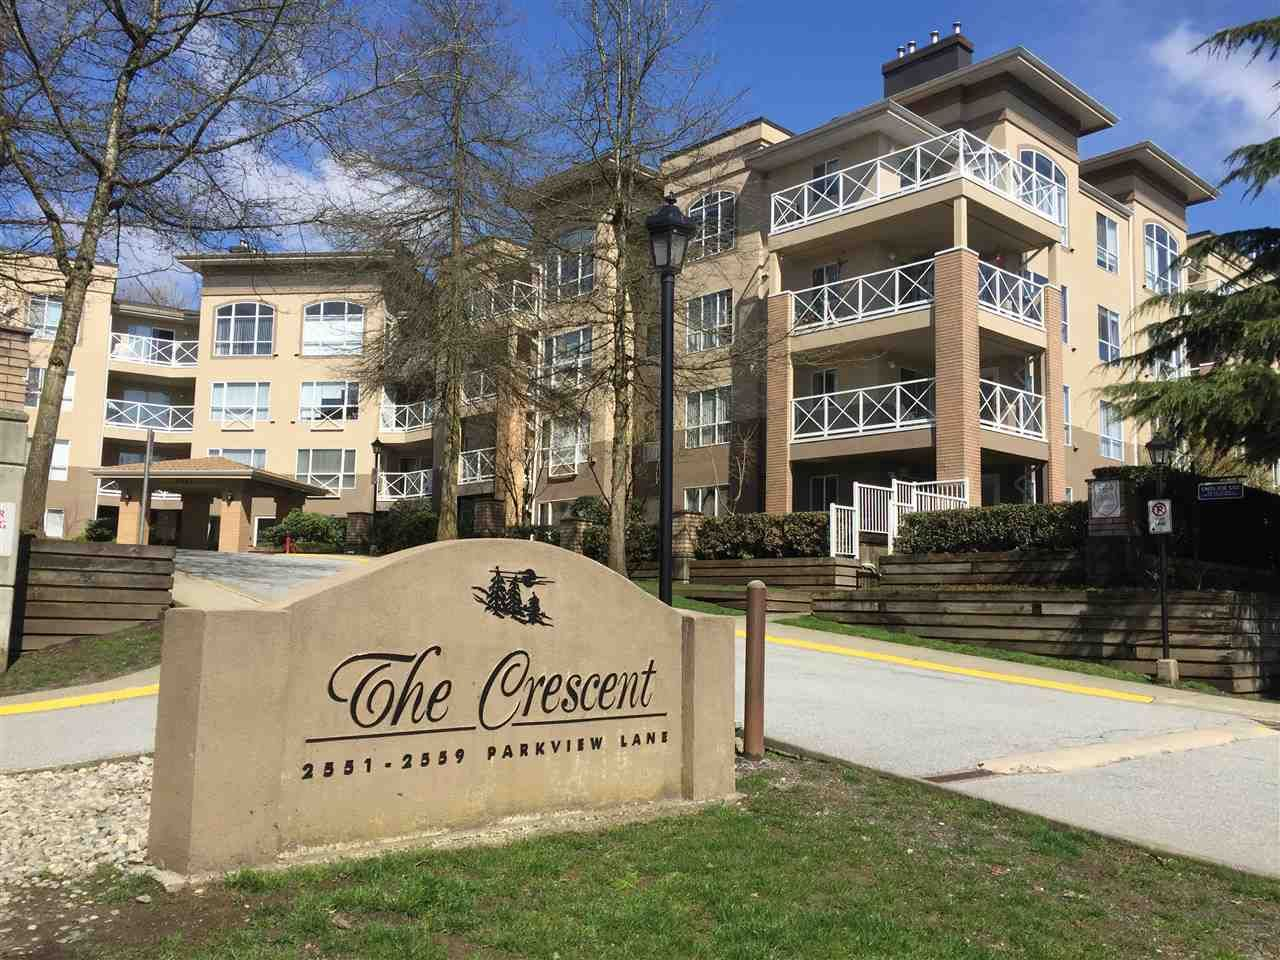 """Main Photo: 216 2559 PARKVIEW Lane in Port Coquitlam: Central Pt Coquitlam Condo for sale in """"THE CRESCENT"""" : MLS®# R2156465"""